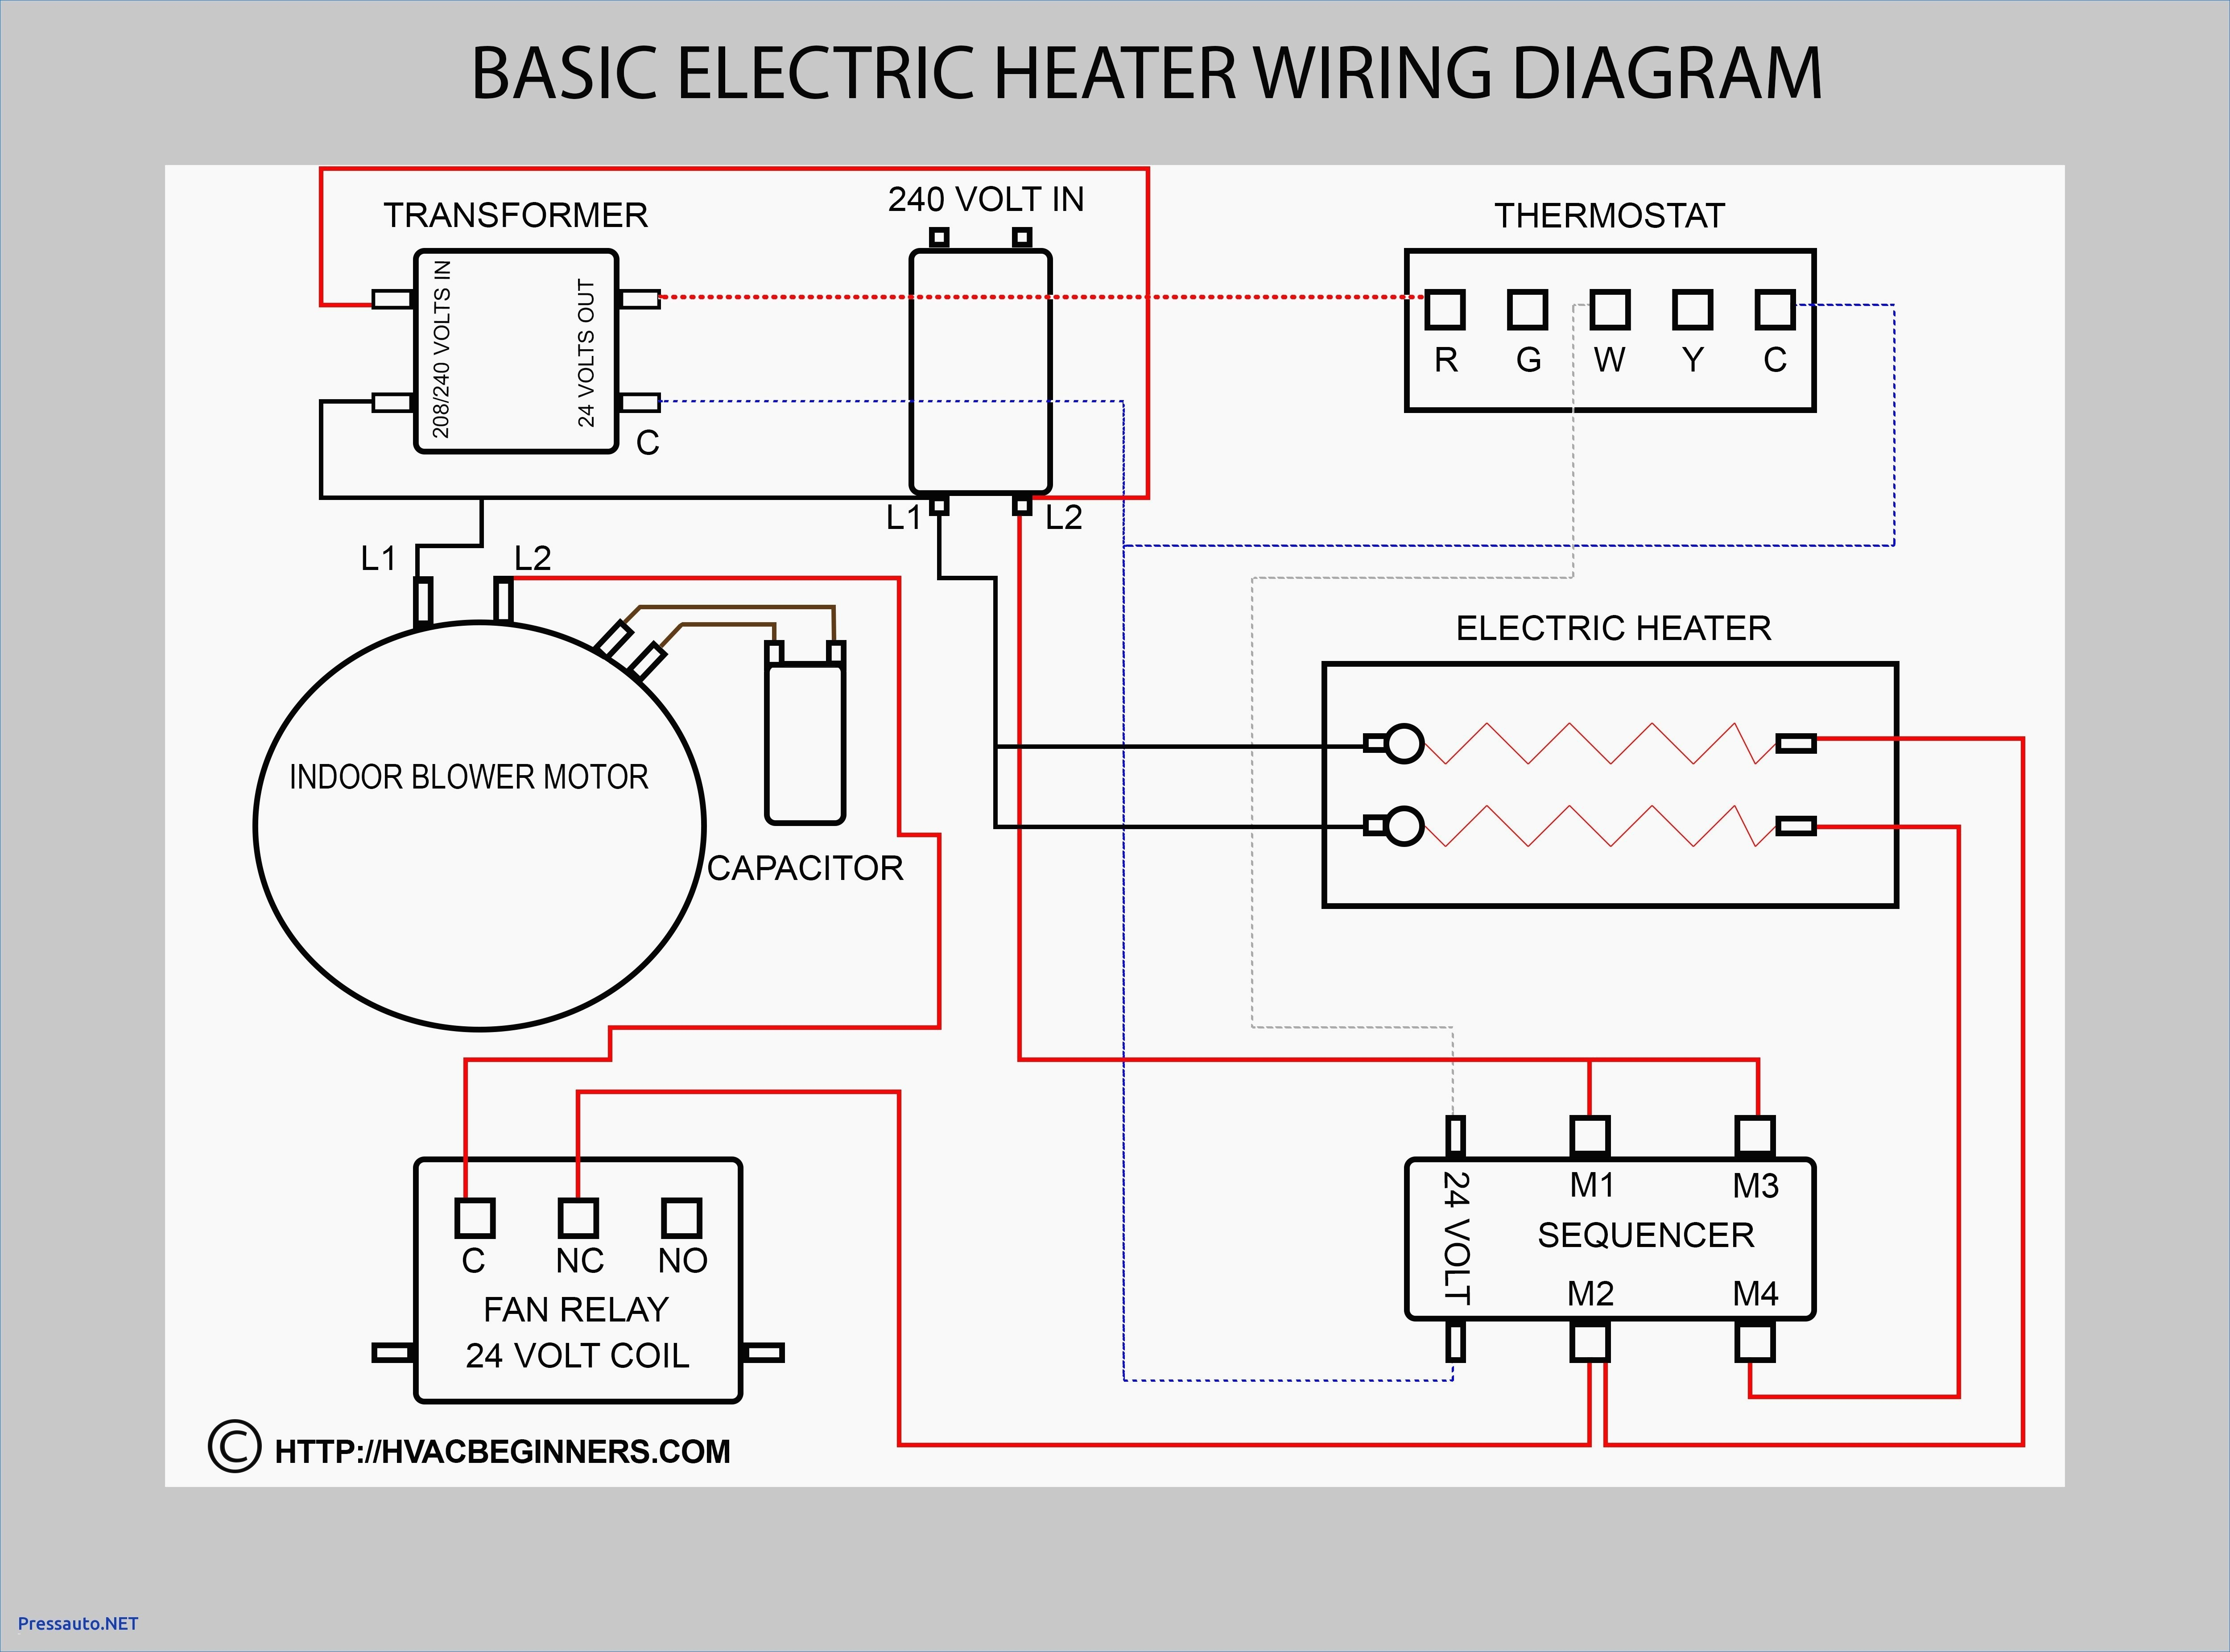 goodman heat pump wiring diagram thermostat gallery wiring diagram rh faceitsalon com goodman package unit thermostat wiring diagram goodman outdoor thermostat wiring diagram